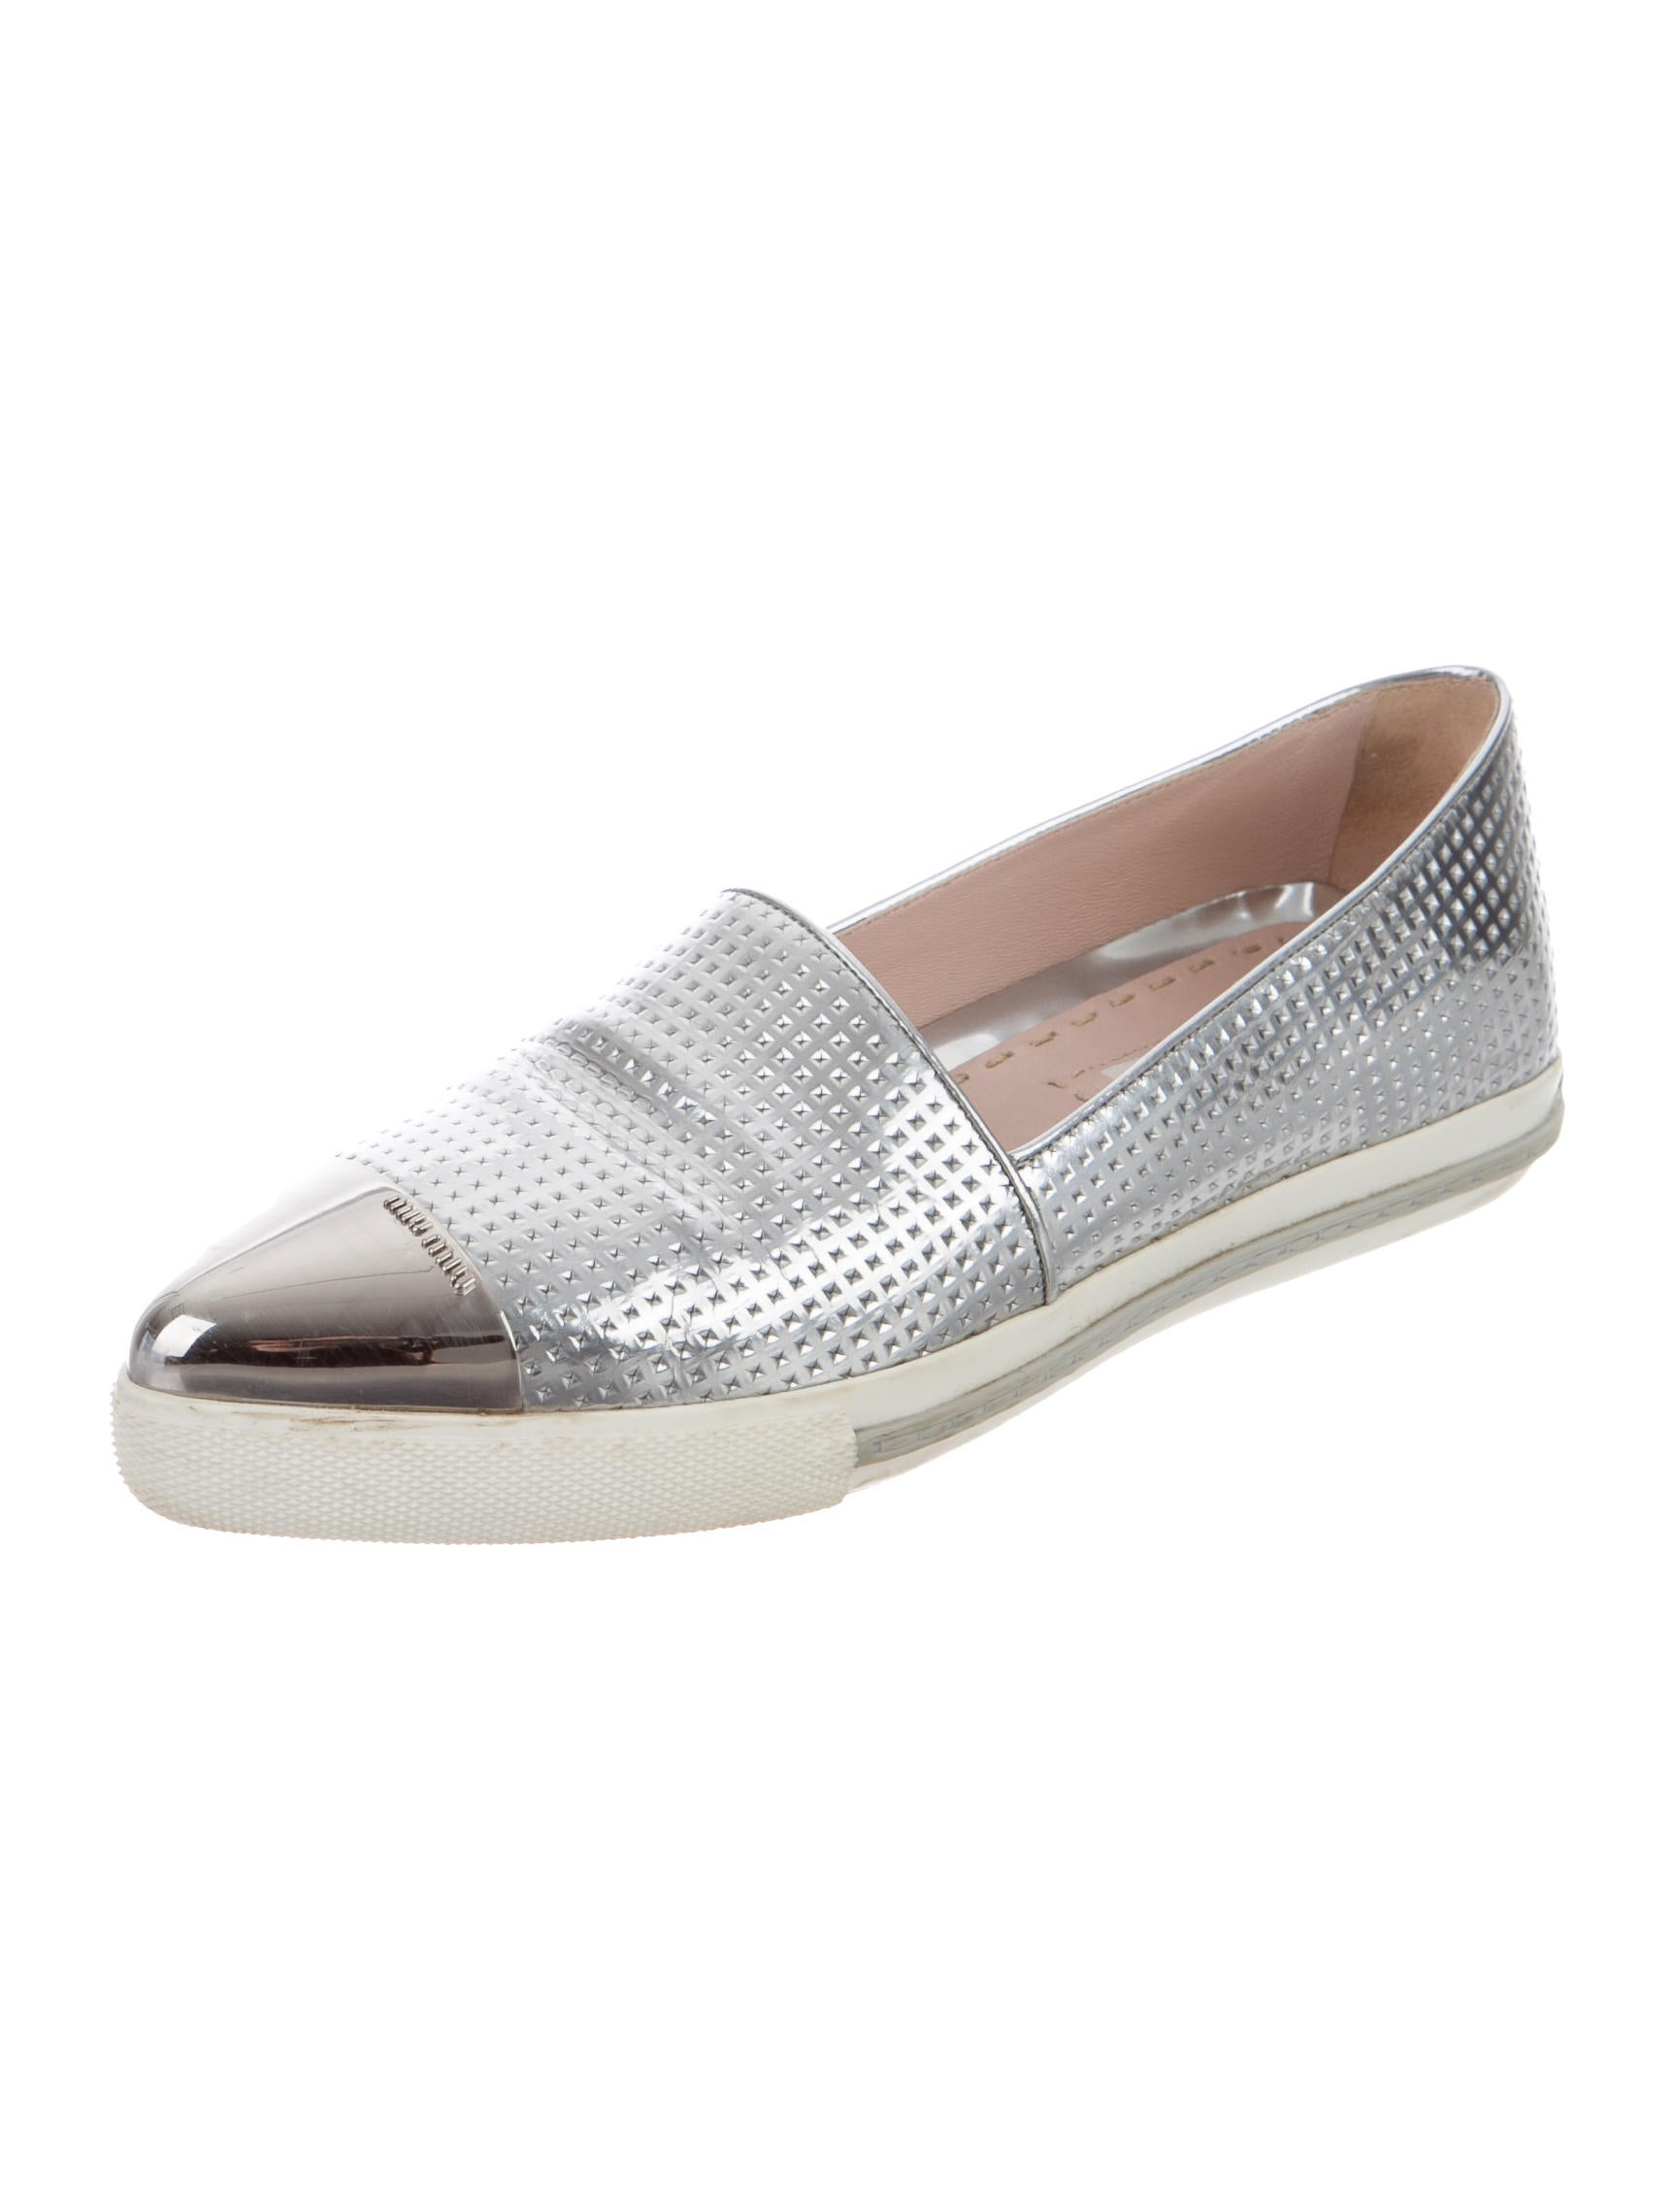 miu miu metallic slip on sneakers shoes miu47746 the